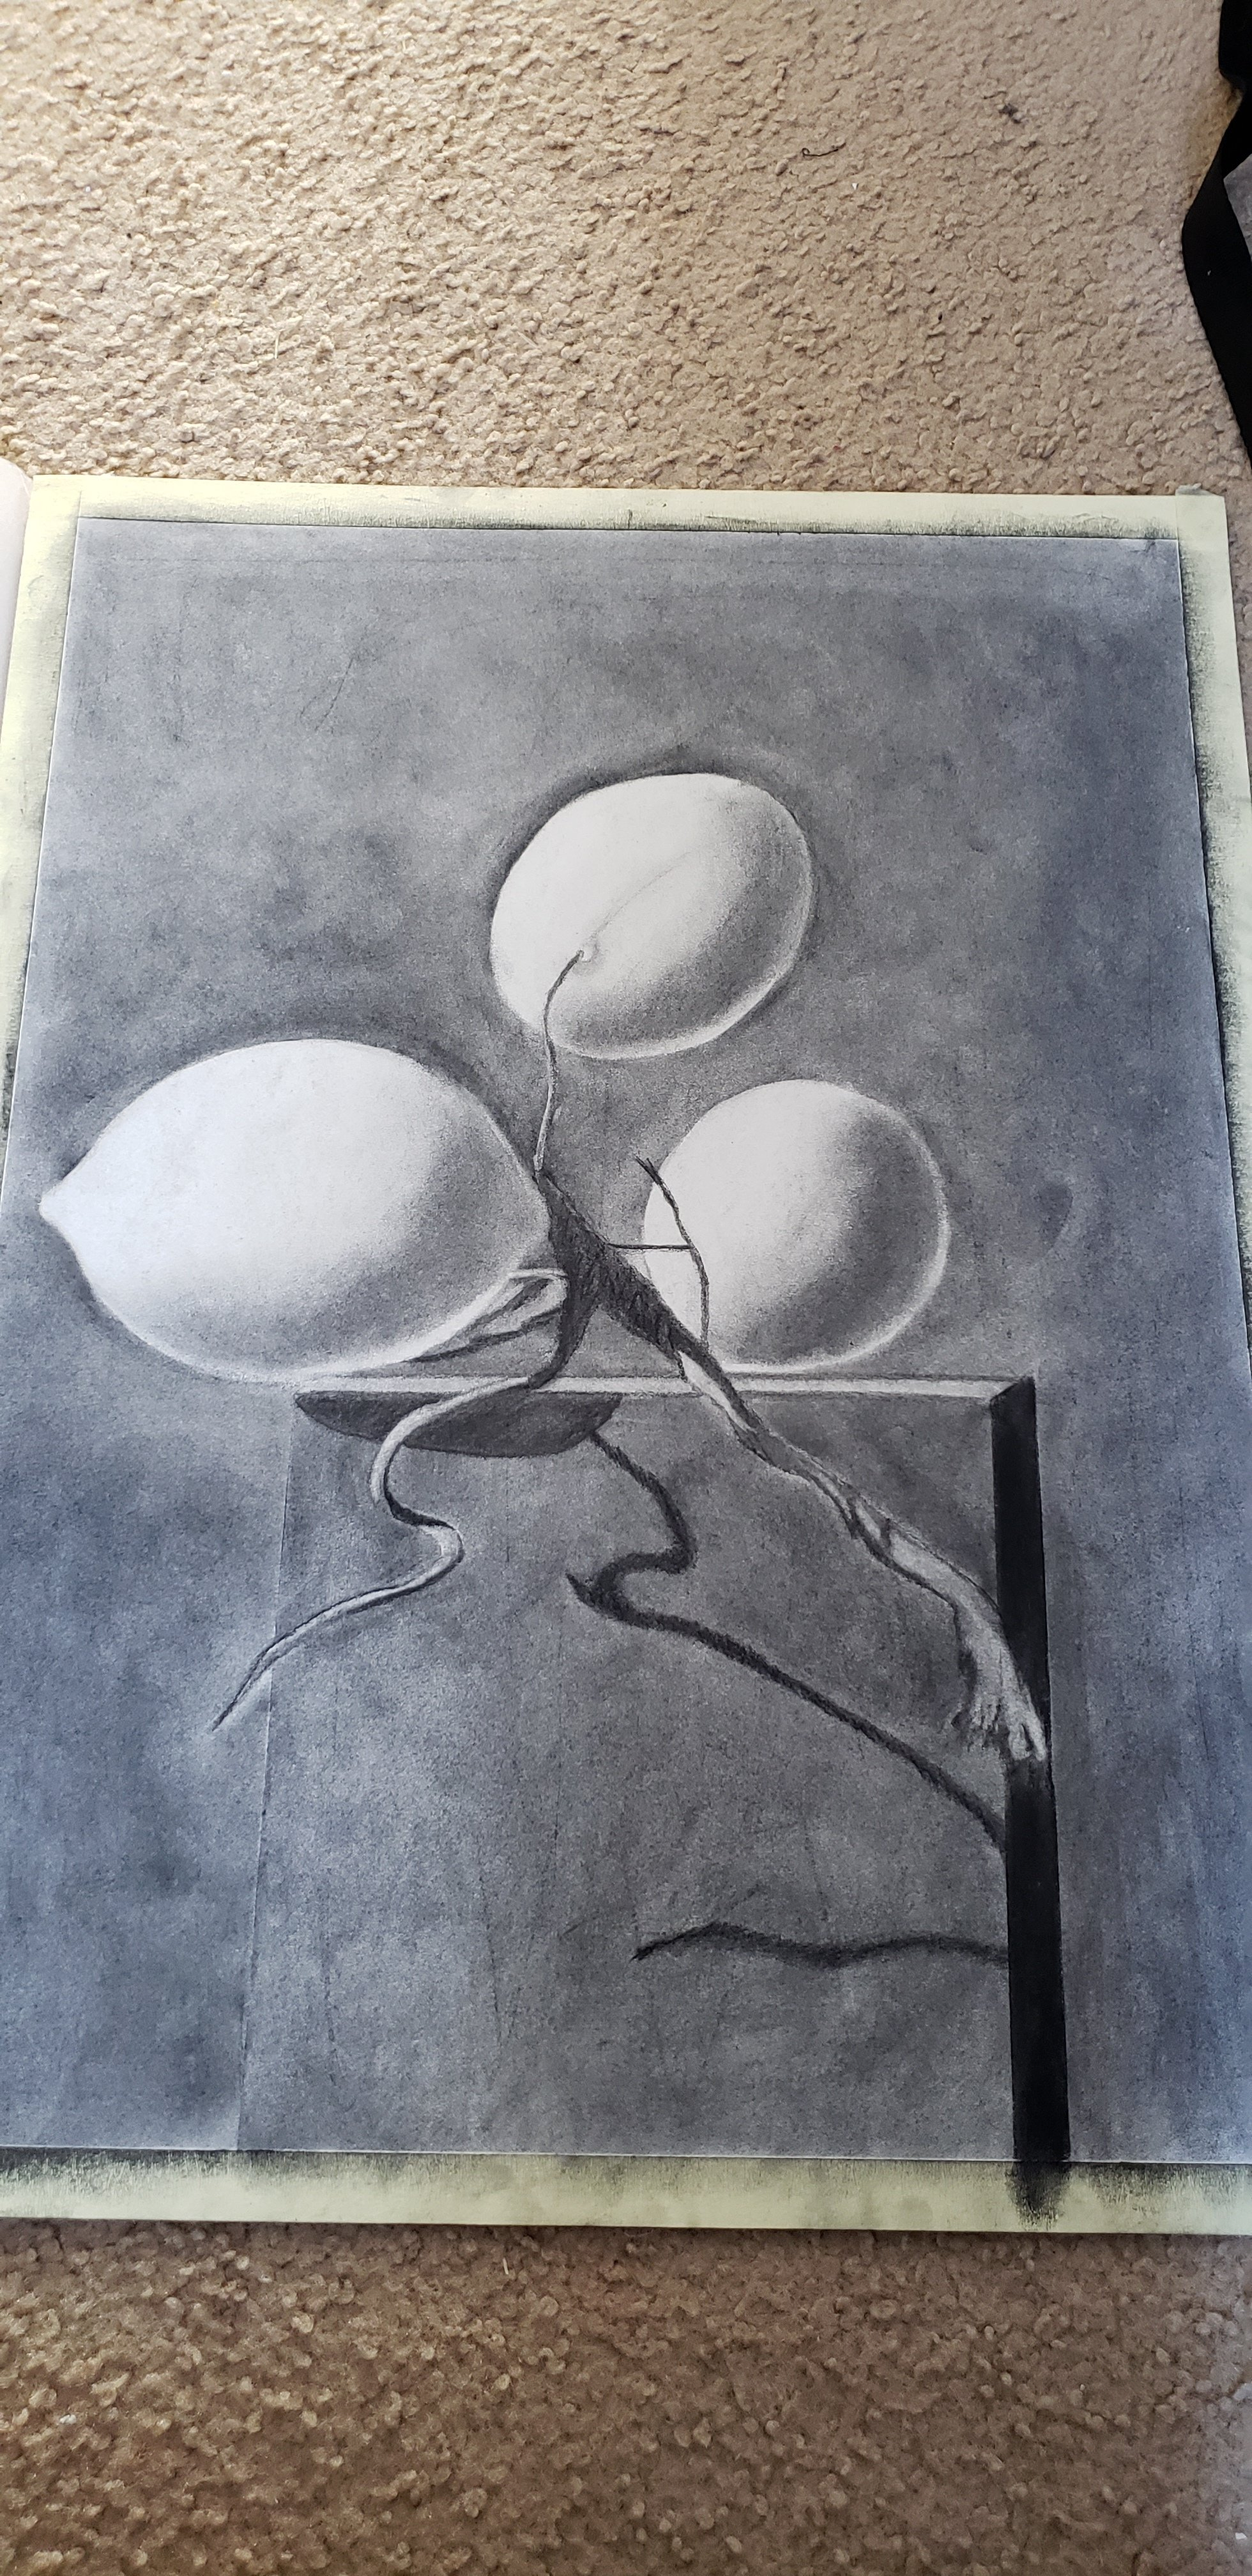 Mei Ling Fontes; When Life Gives You Lemons, 2018, Original Drawing Charcoal, 18 x 24 inches. Artwork description: 241 This was a piece I created in an Art class.  Still life of lemons on boxes. ...